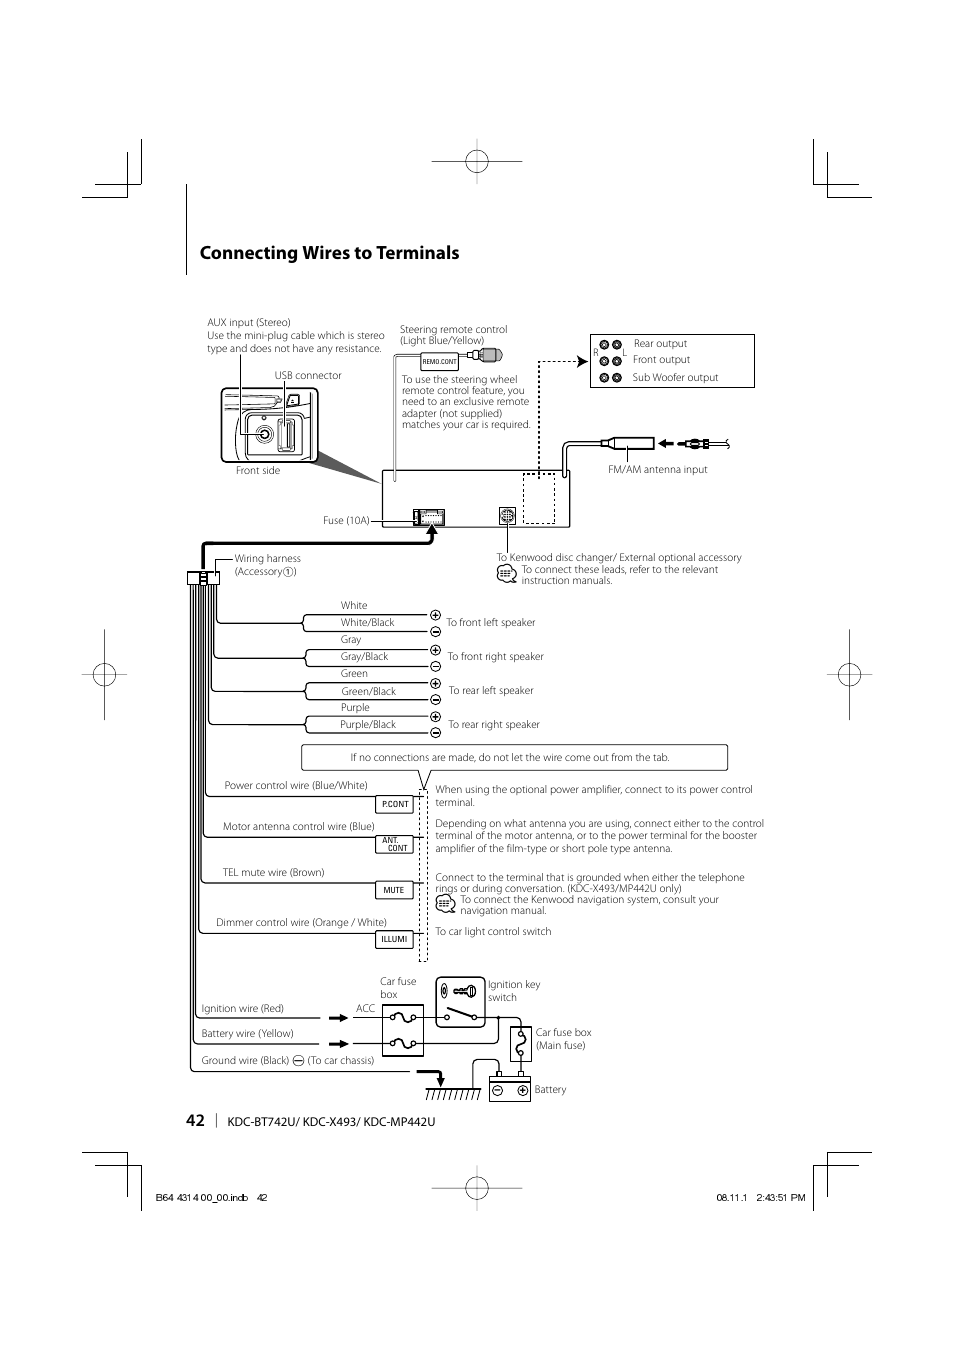 Kenwood Wiring Harness Diagram Kdc 115u Not Lossing Car Audio Dash Unit Connecting Wires To Terminals Bt742u User Manual Rh Manualsdir Com Home Stereo Diagrams